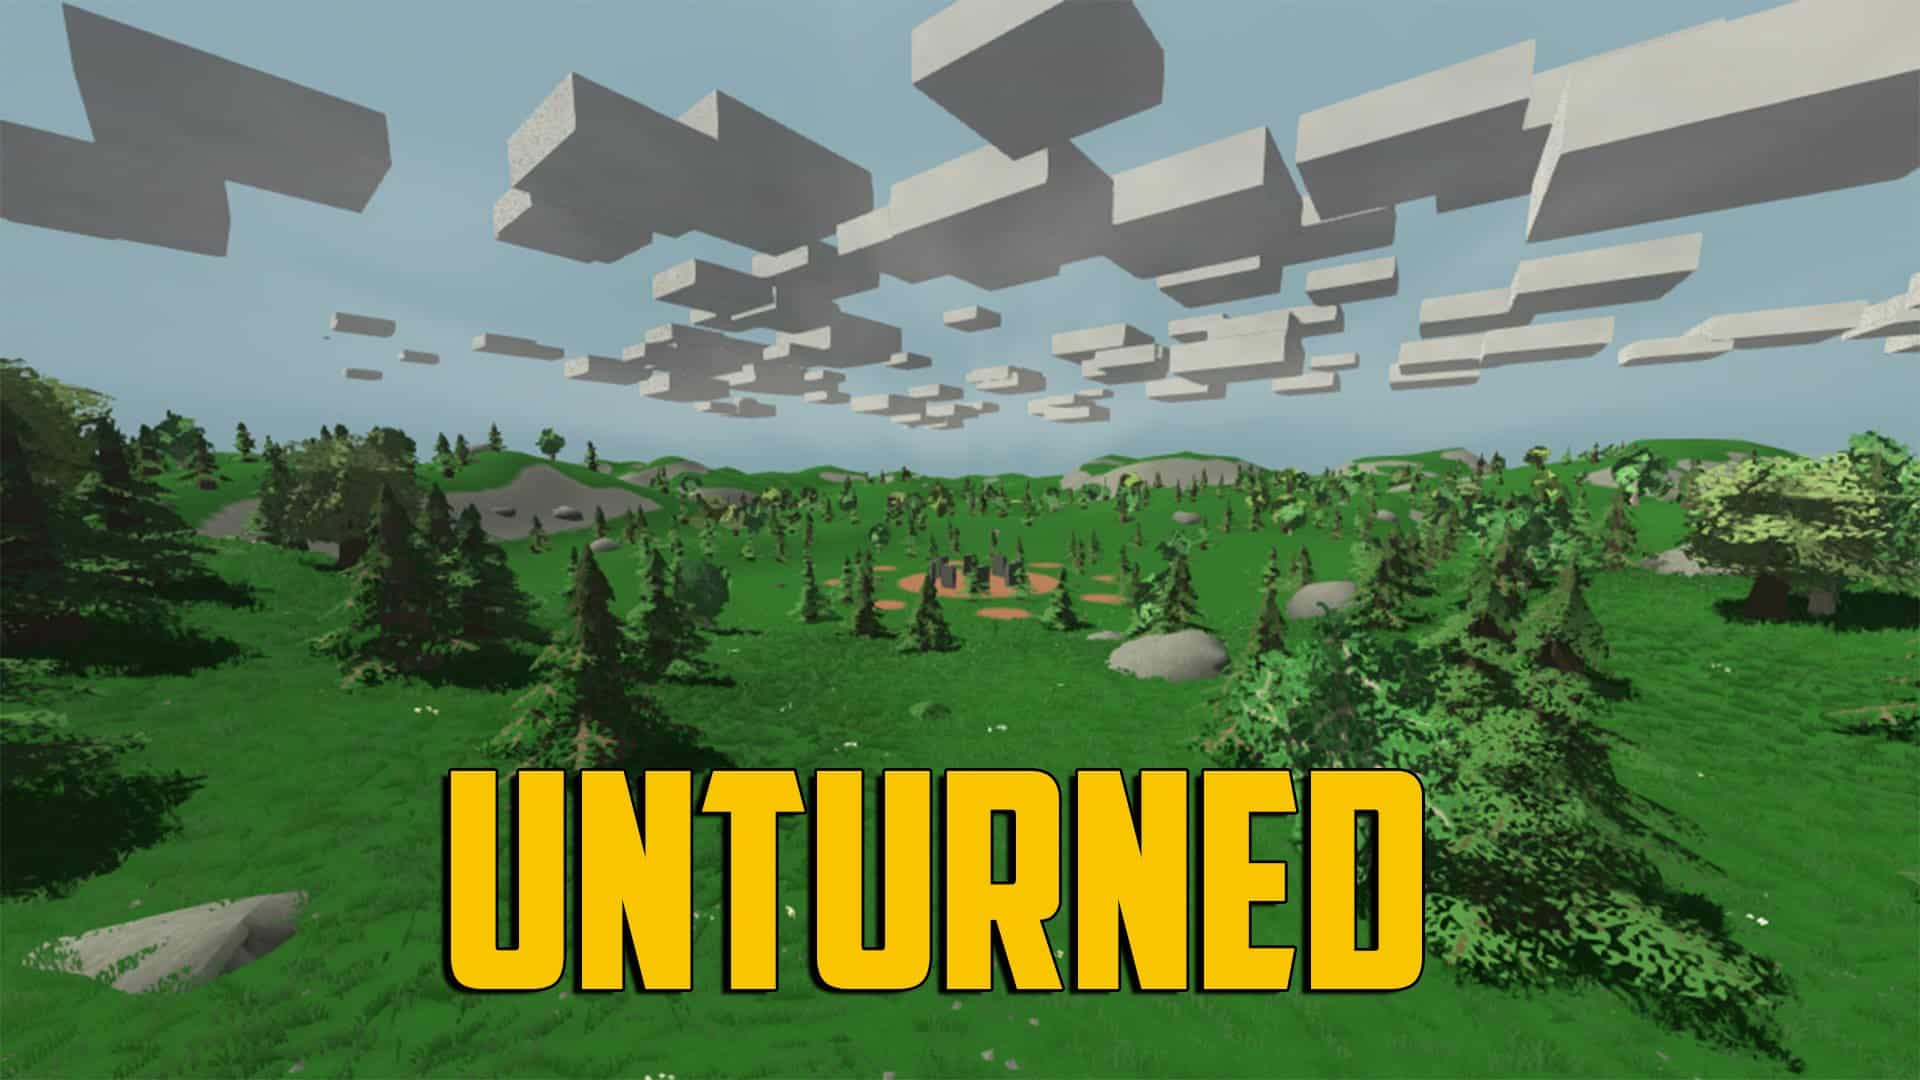 How To Fix Unturned Lag - Kill Ping